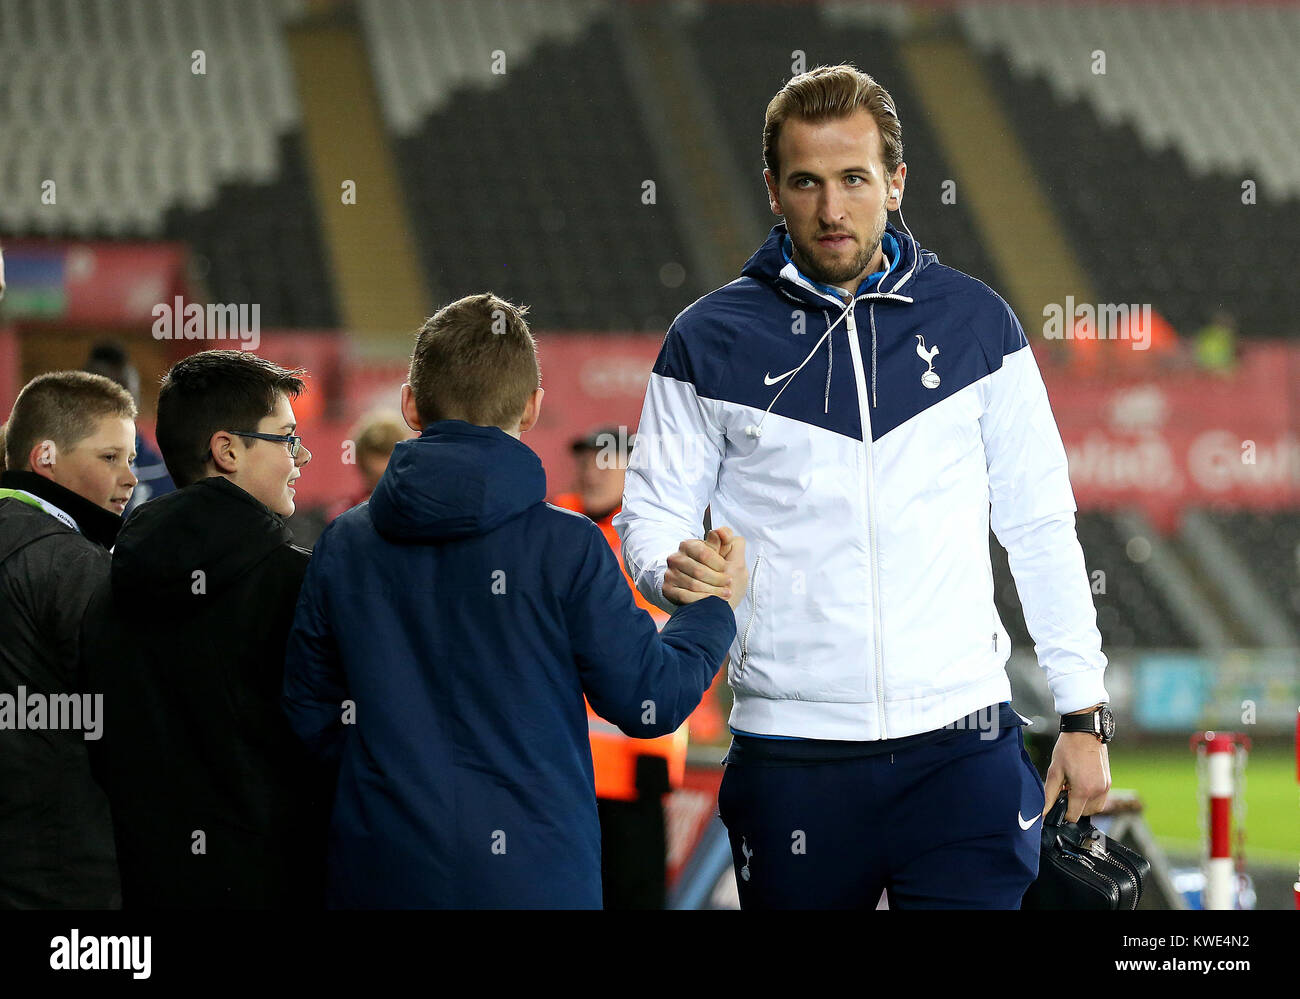 Tottenham Hotspur S Harry Kane Shakes A Young Fans Hand Before The Premier League Match At The Liberty Stadium Swansea Stock Photo Alamy